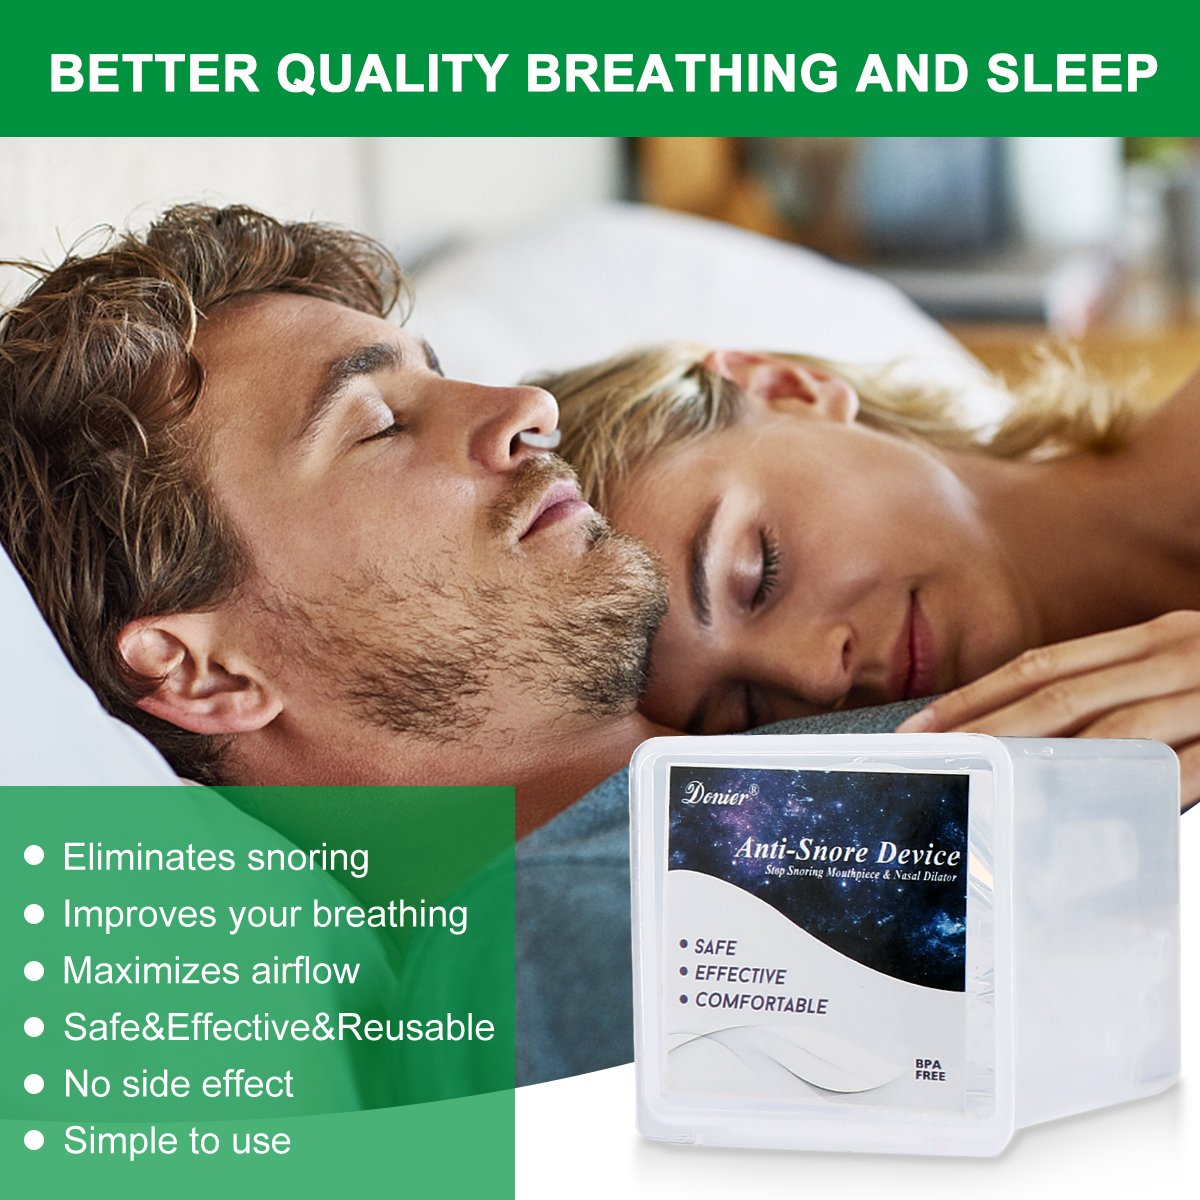 Anti Snoring Devices Tongue, 4 Set Snore Stopper Nose Vents Nasal Dilators Stop Snoring Solution Snoring Mouthpiece Sleep Aid Device Snore Reduction Silicone Snoring Tongue Retainer for Men Women by Donier (Image #3)